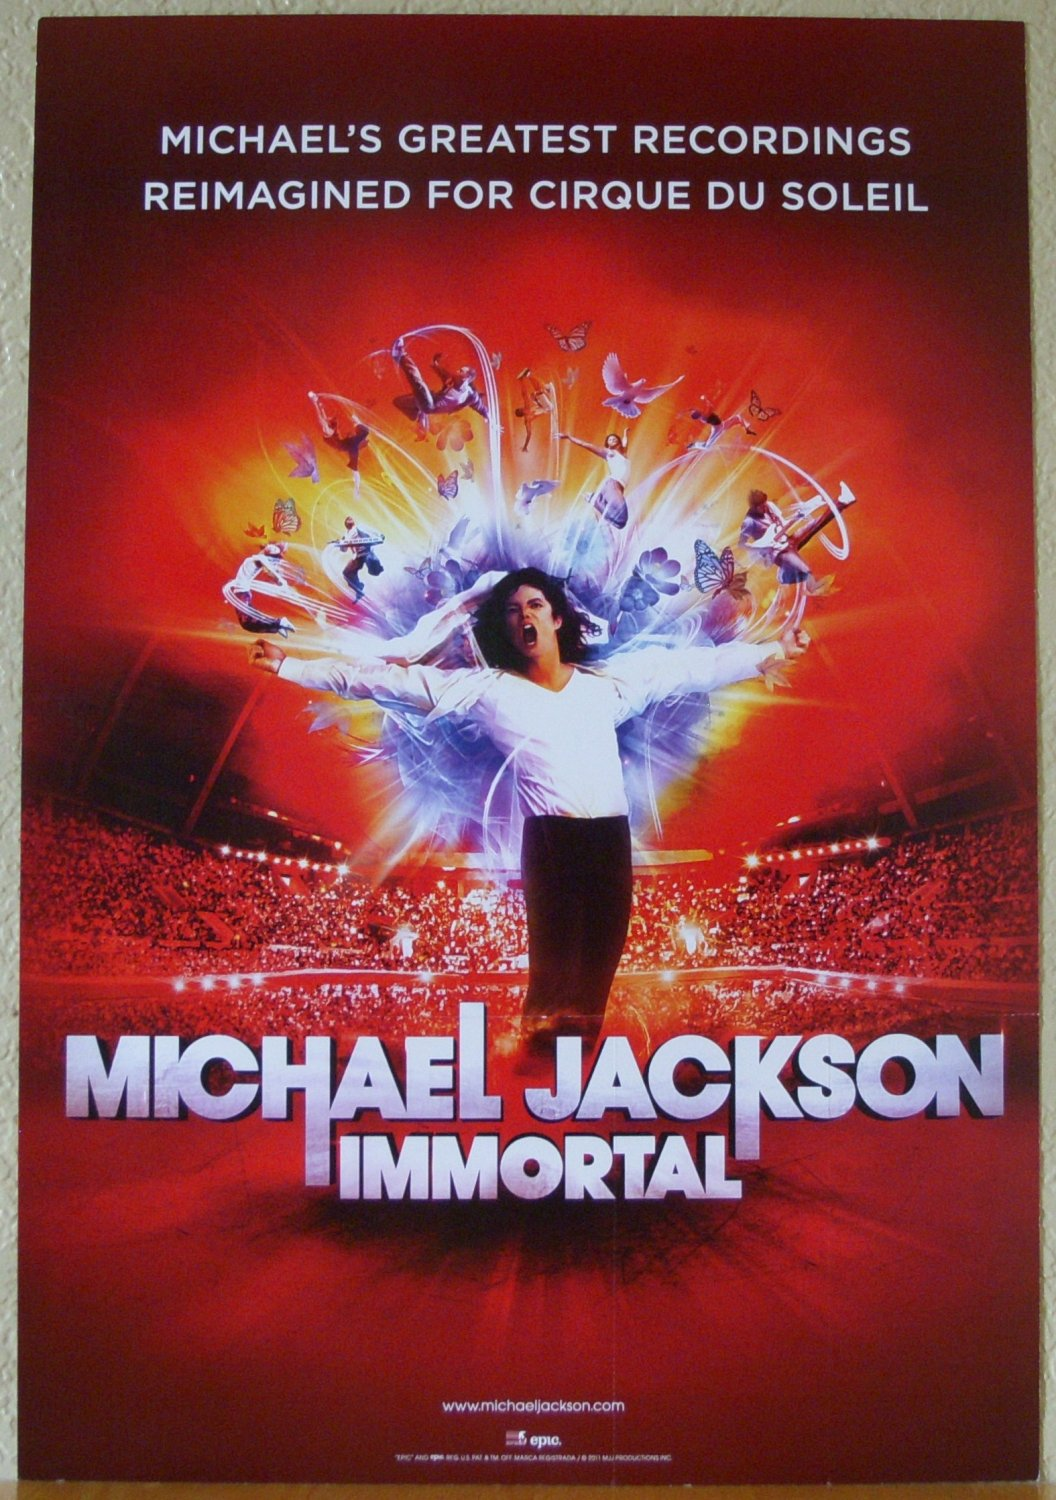 "MICHAEL JACKSON Immortal Cirque Du Soleil 2011 US 12"" X 17"" 2 Sided Promotional Poster"